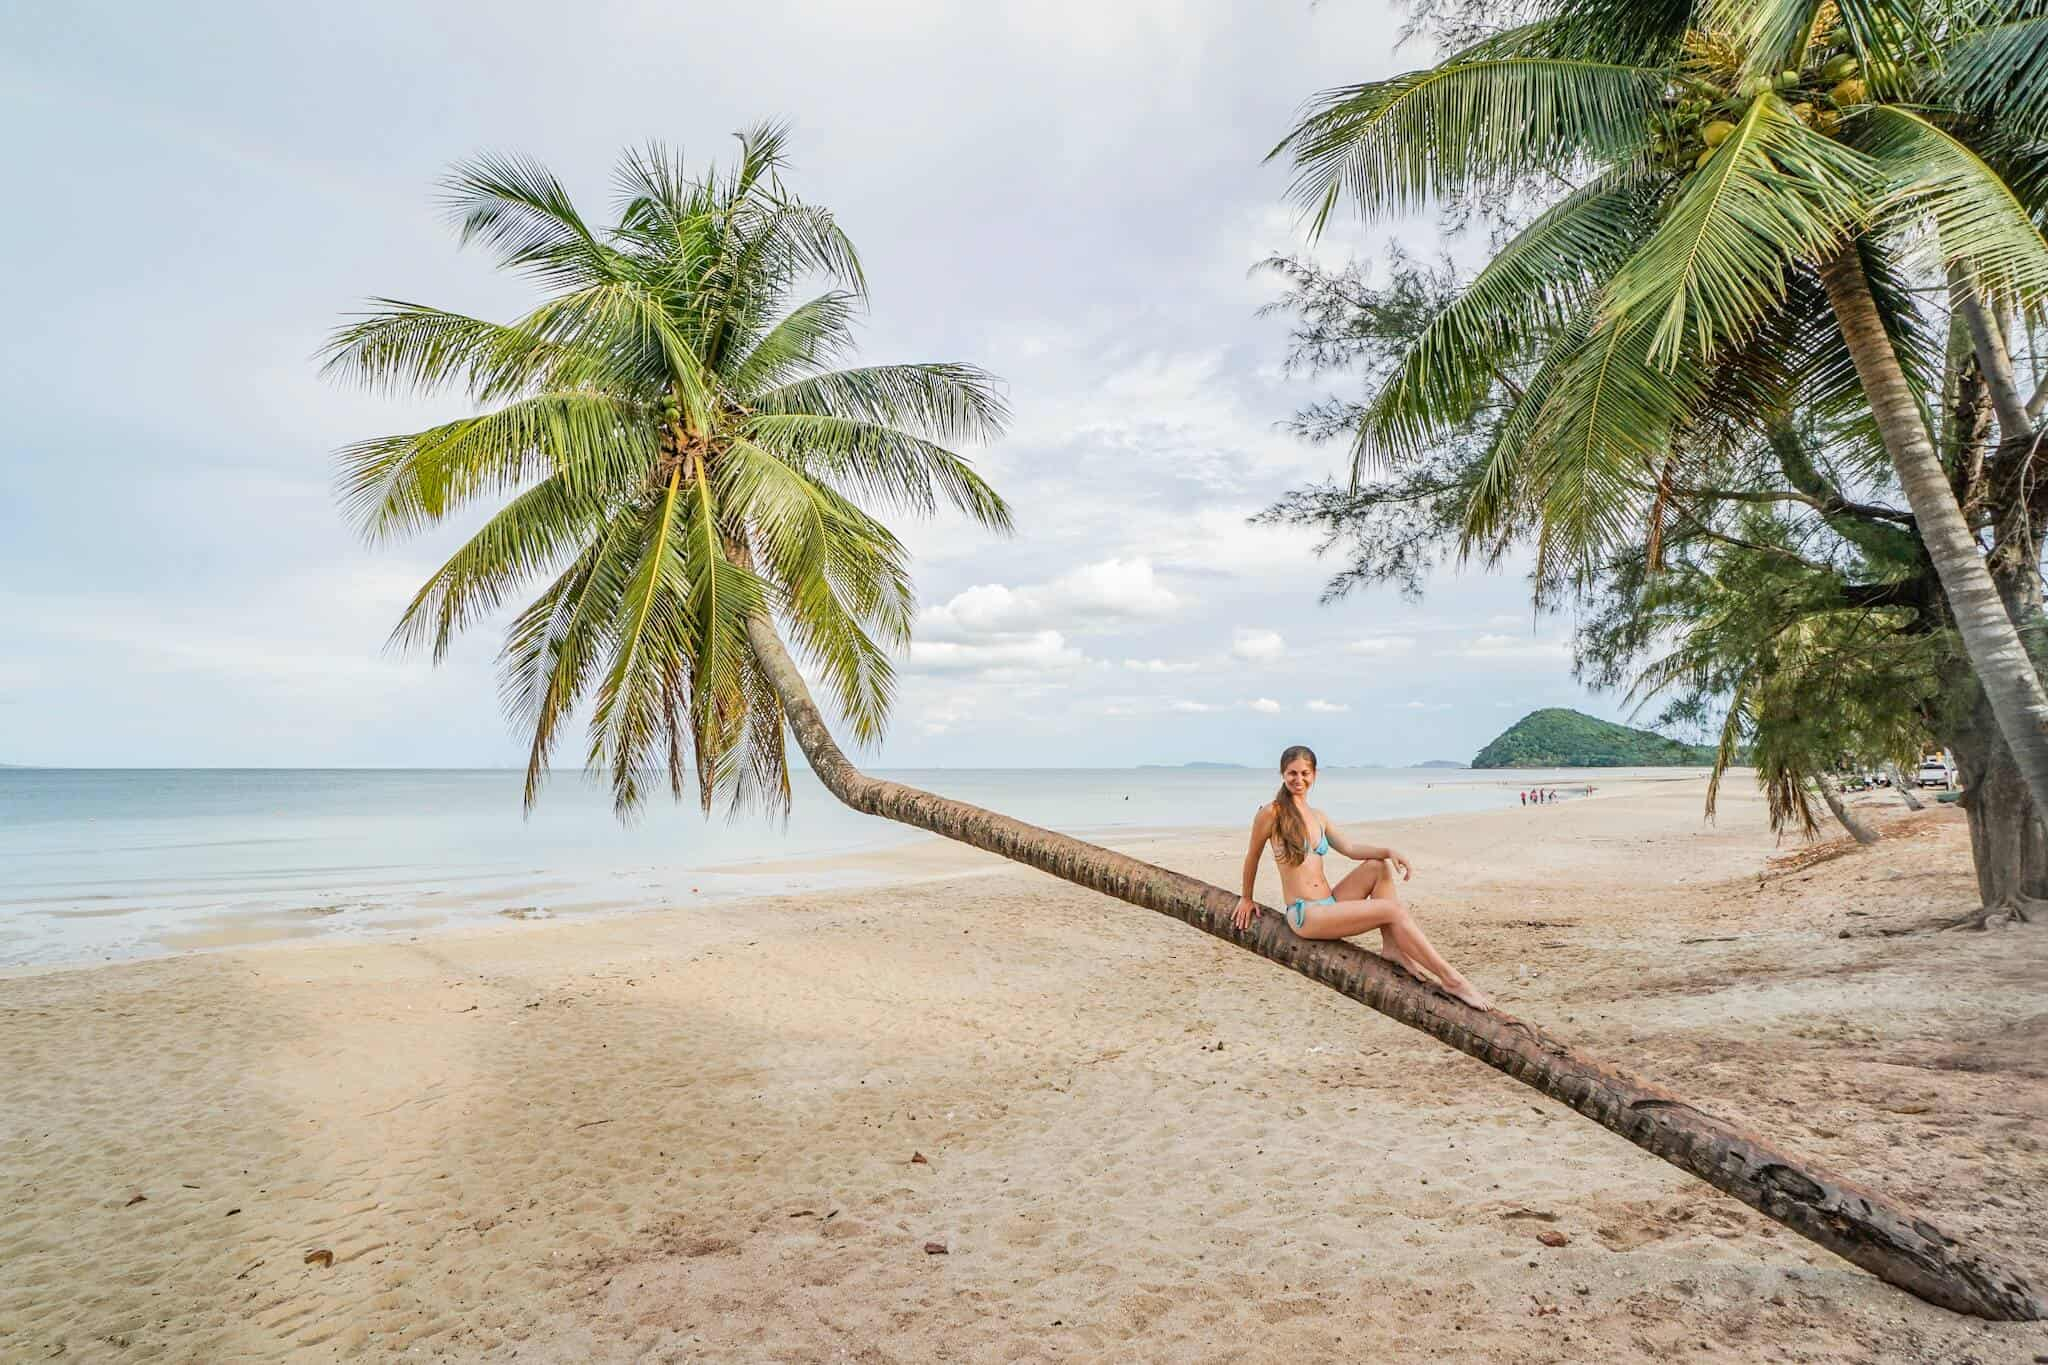 Thung Wua Lan - Chumphon's Most Beautiful Beach – Crooked Palm Tree